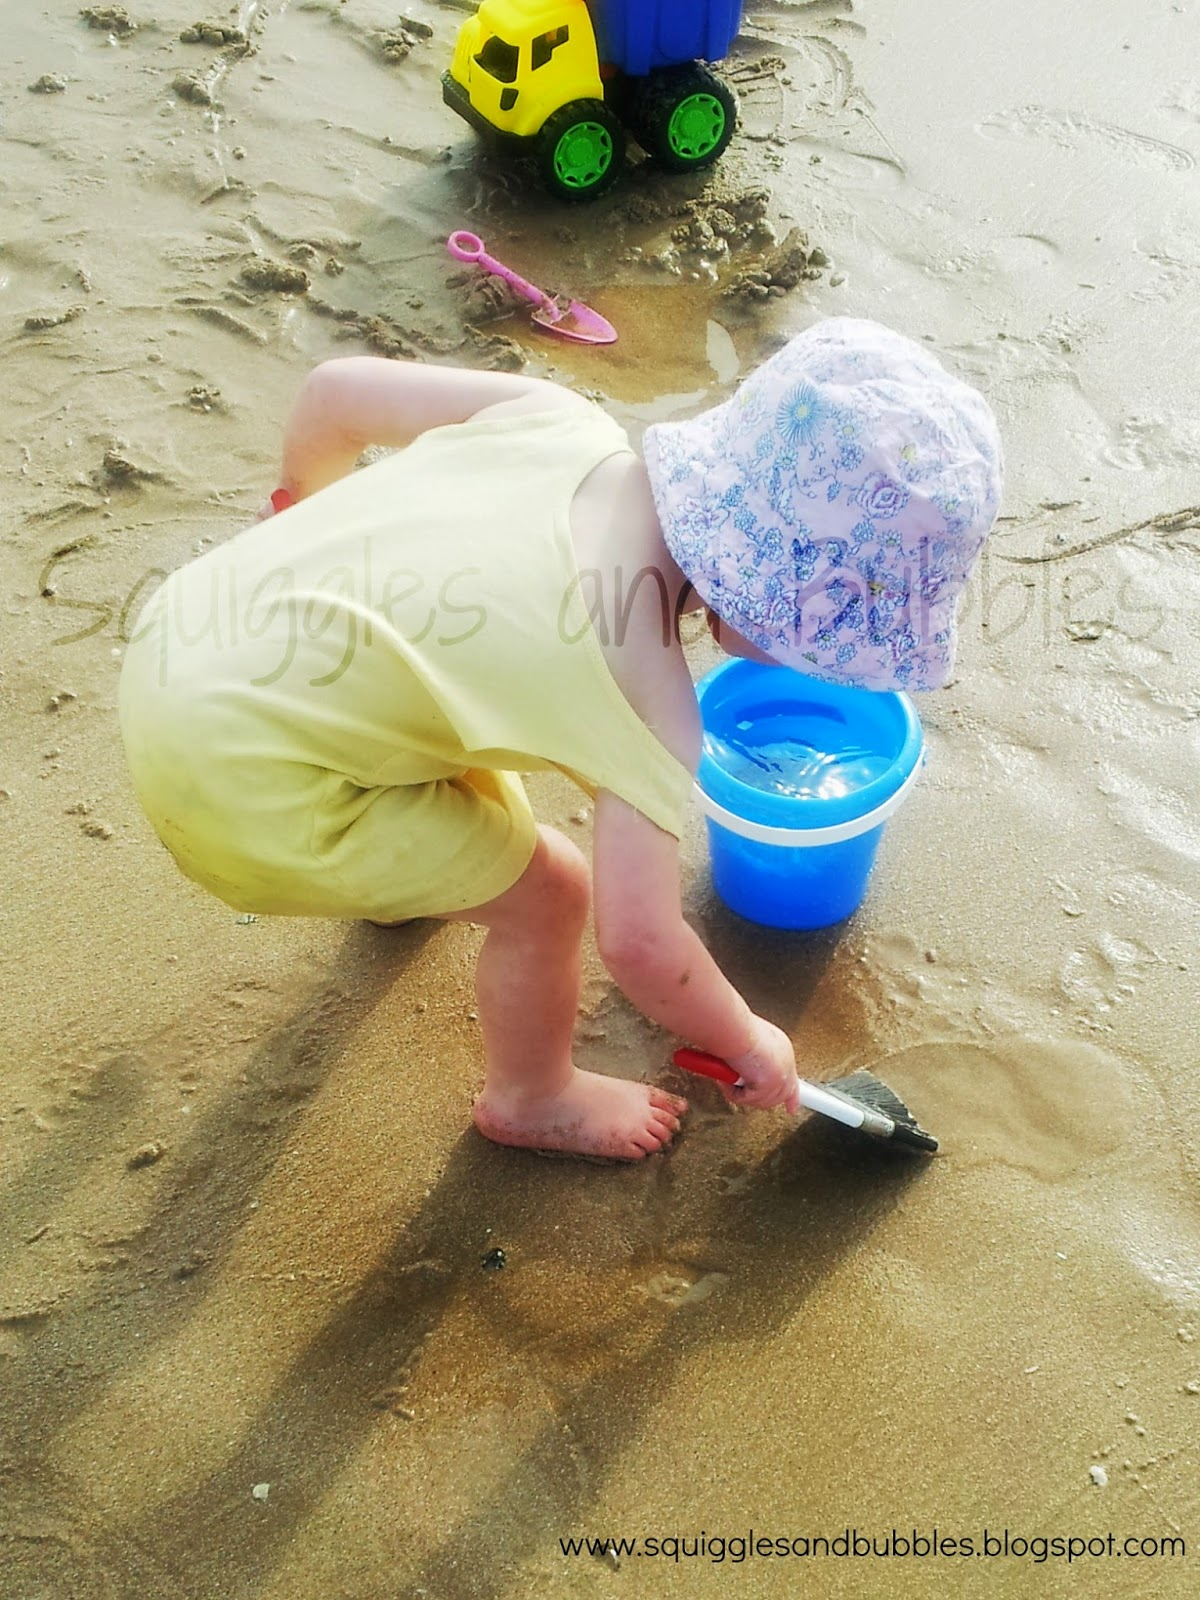 Beach Toys For Girls : Squiggles and bubbles a different beach toy